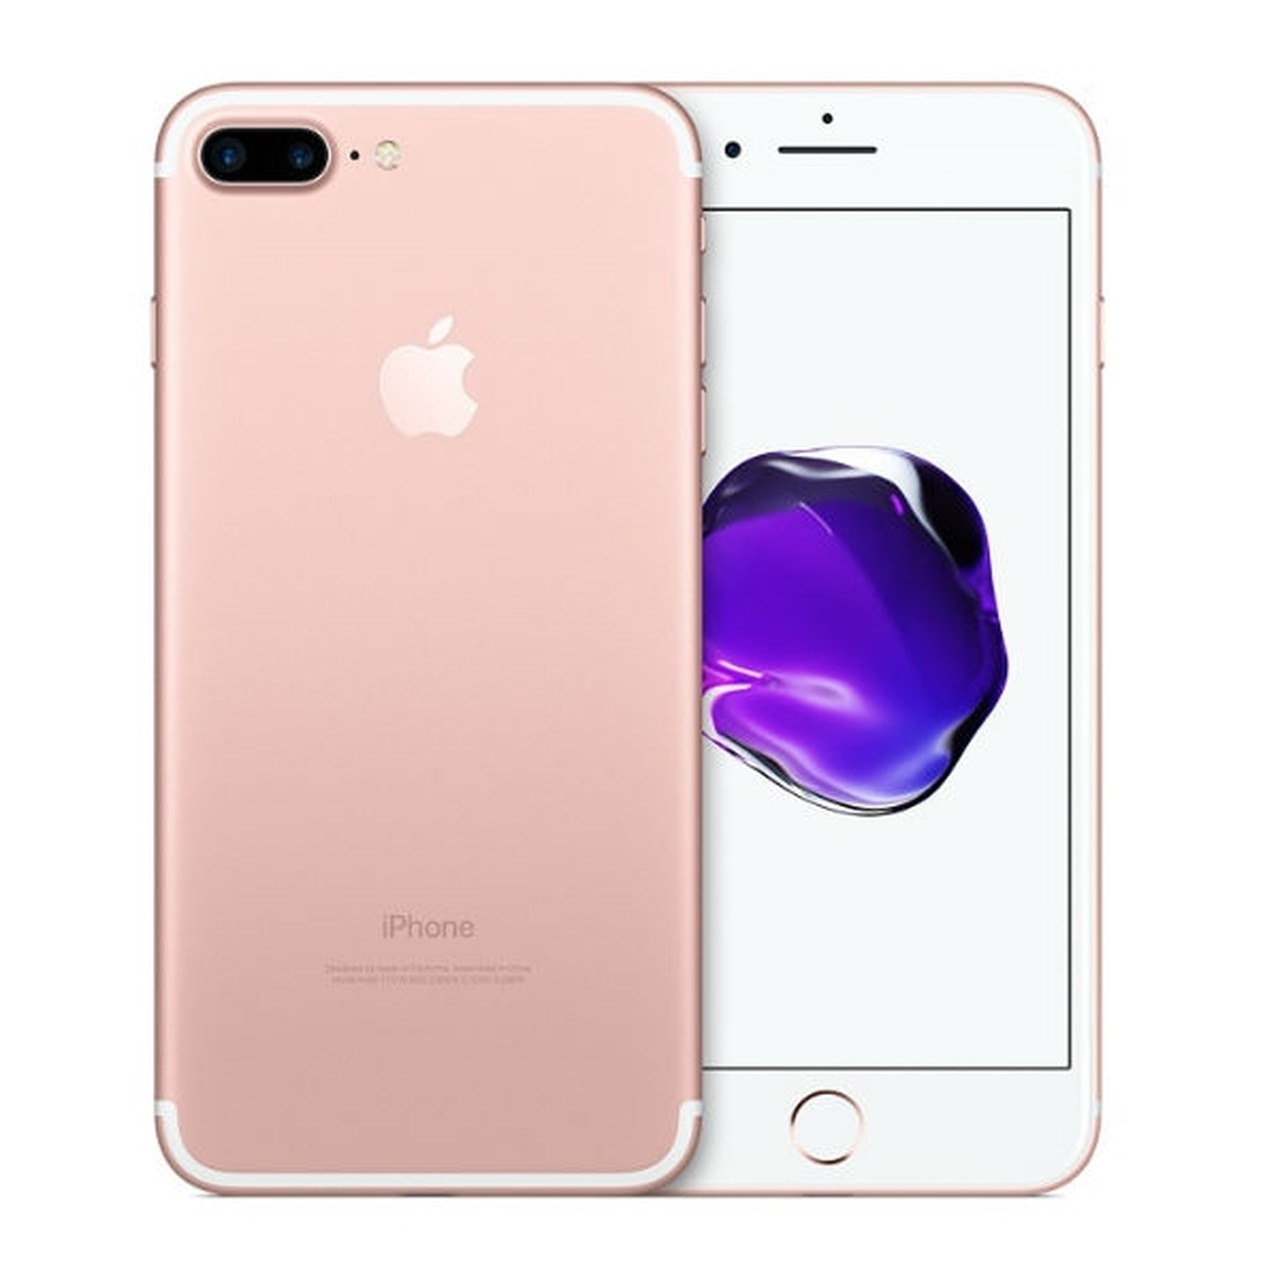 apple iphone 7 plus at t 128gb rose gold mn562ll a